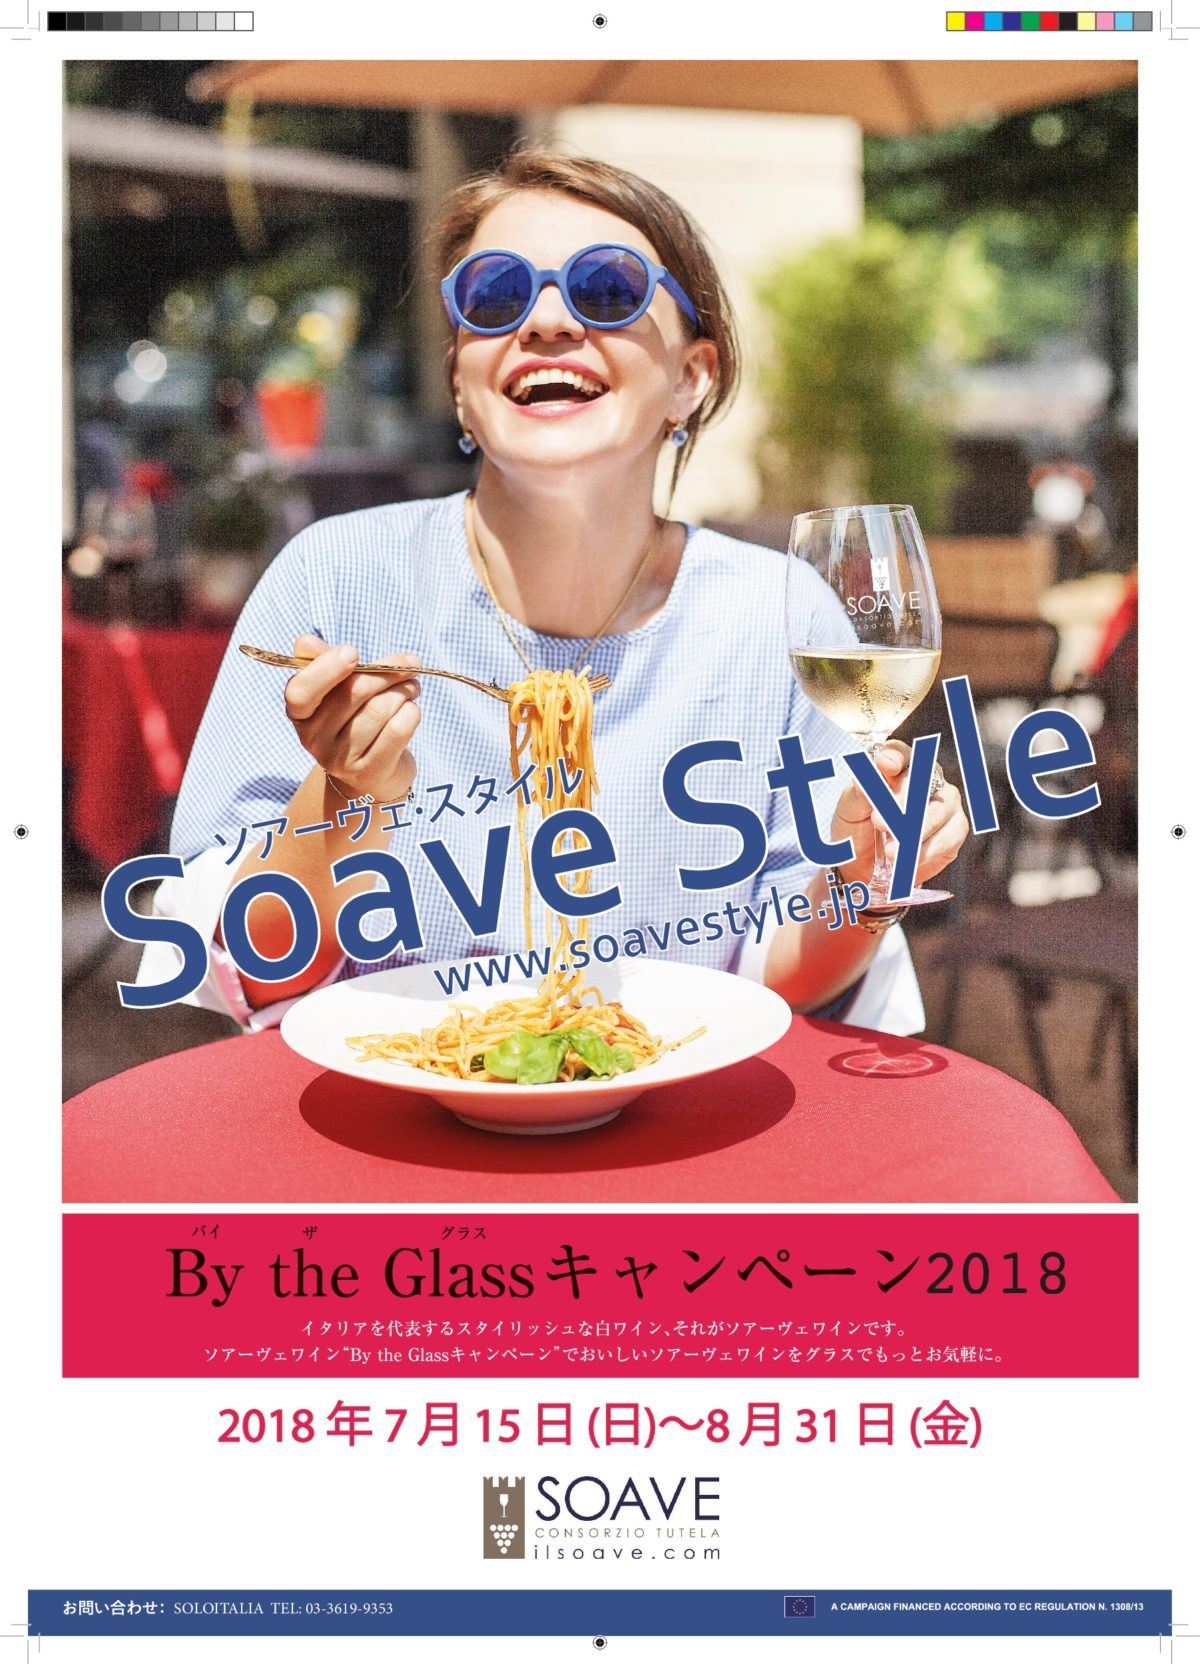 Soave By The Glassキャンペーン2018開催中!